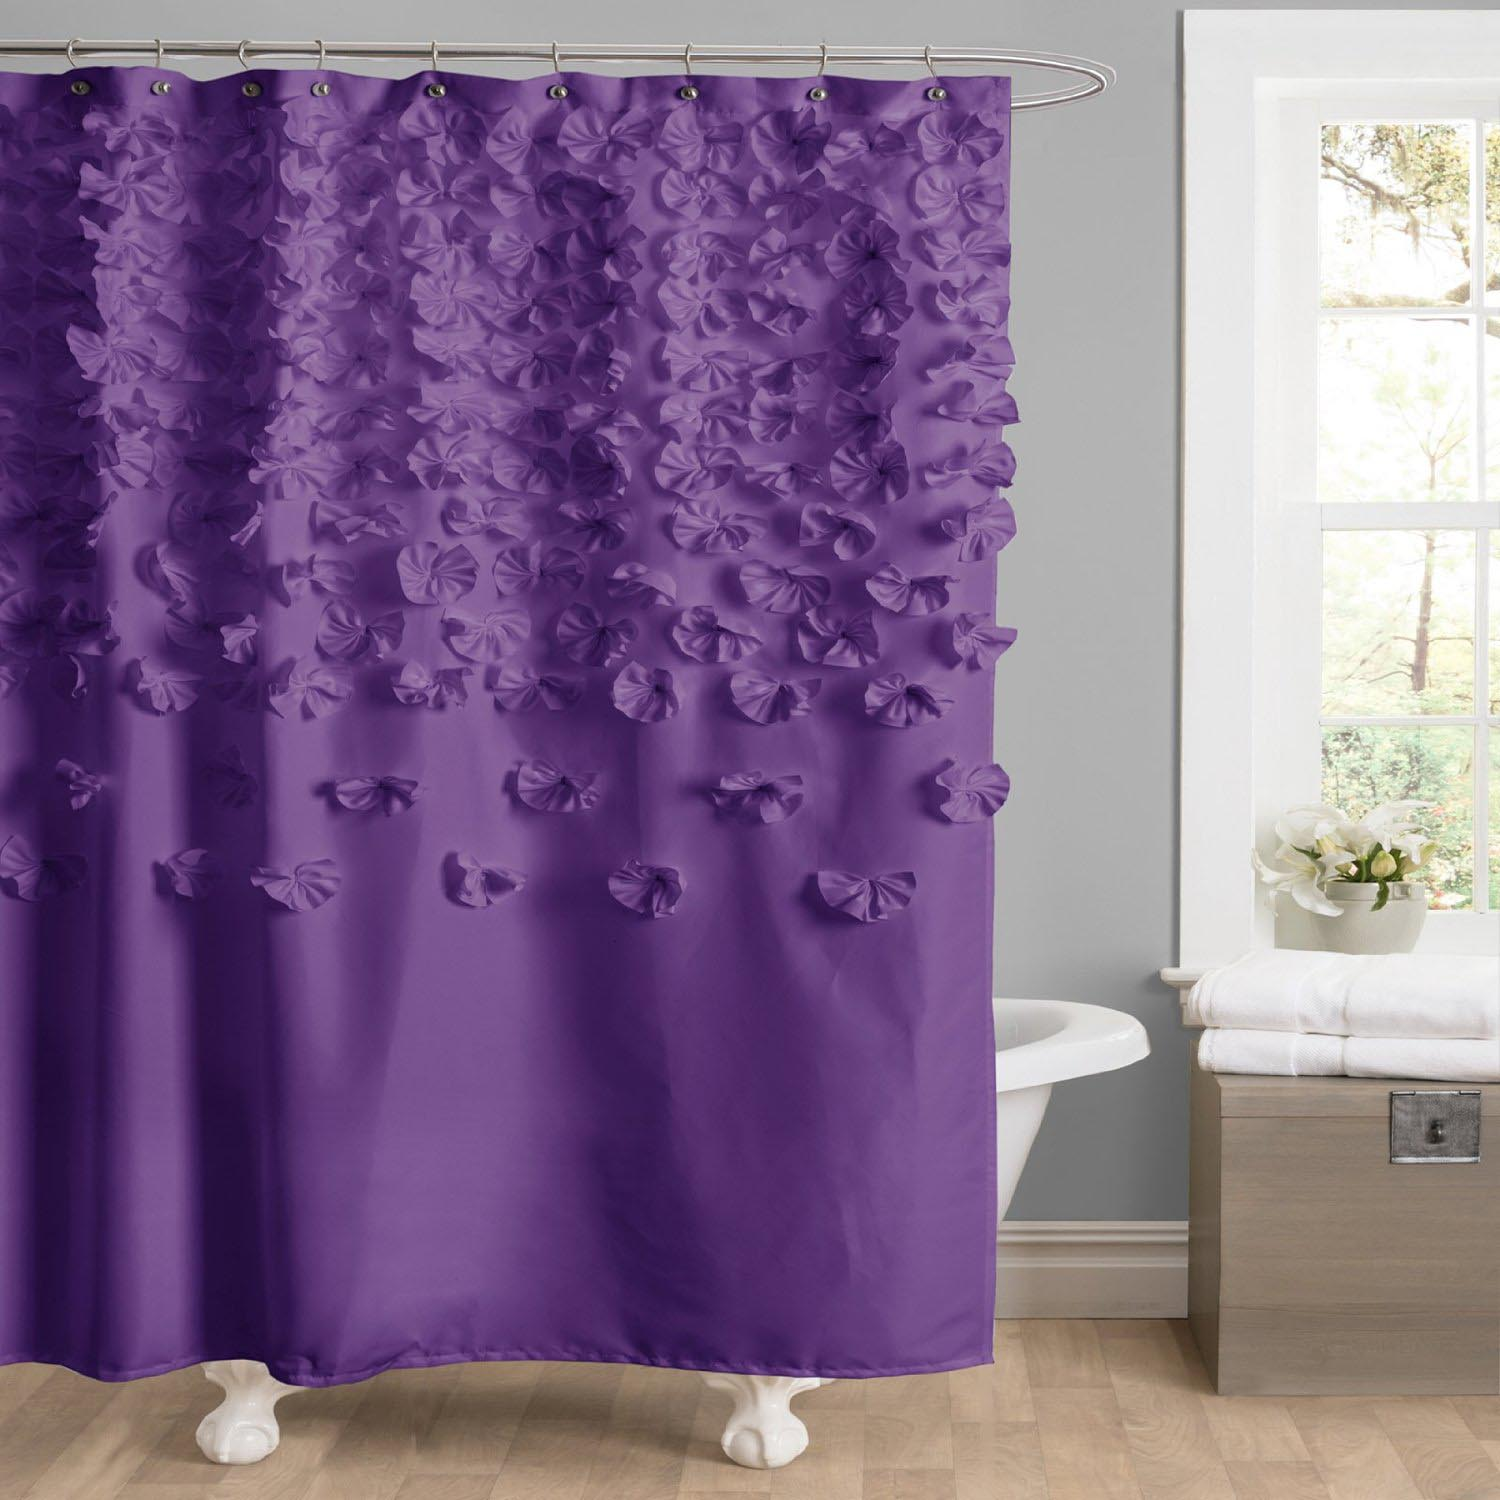 Swag Shower Curtain Attached Valance Window Treatments